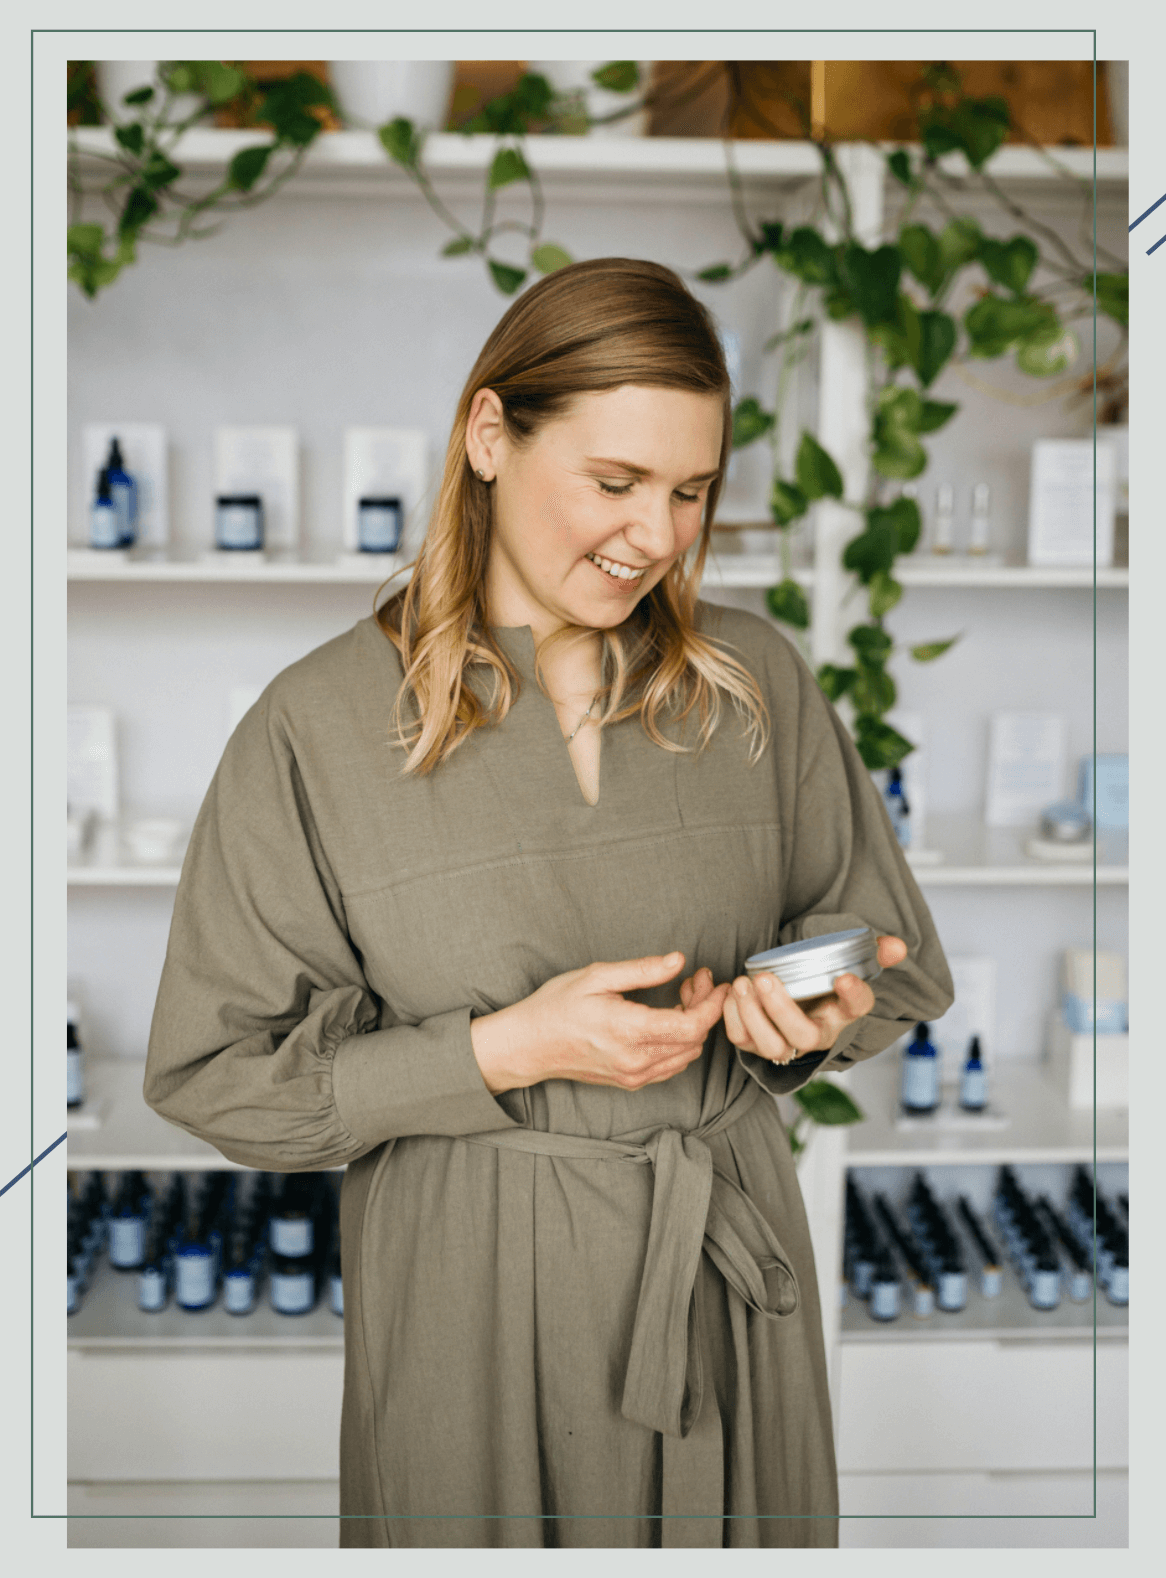 Province-Apothecary-Founder-Julie-Clark-Holding-Fondly-The-Product-That-Started-It-All-The-Healing-Eczema-Balm